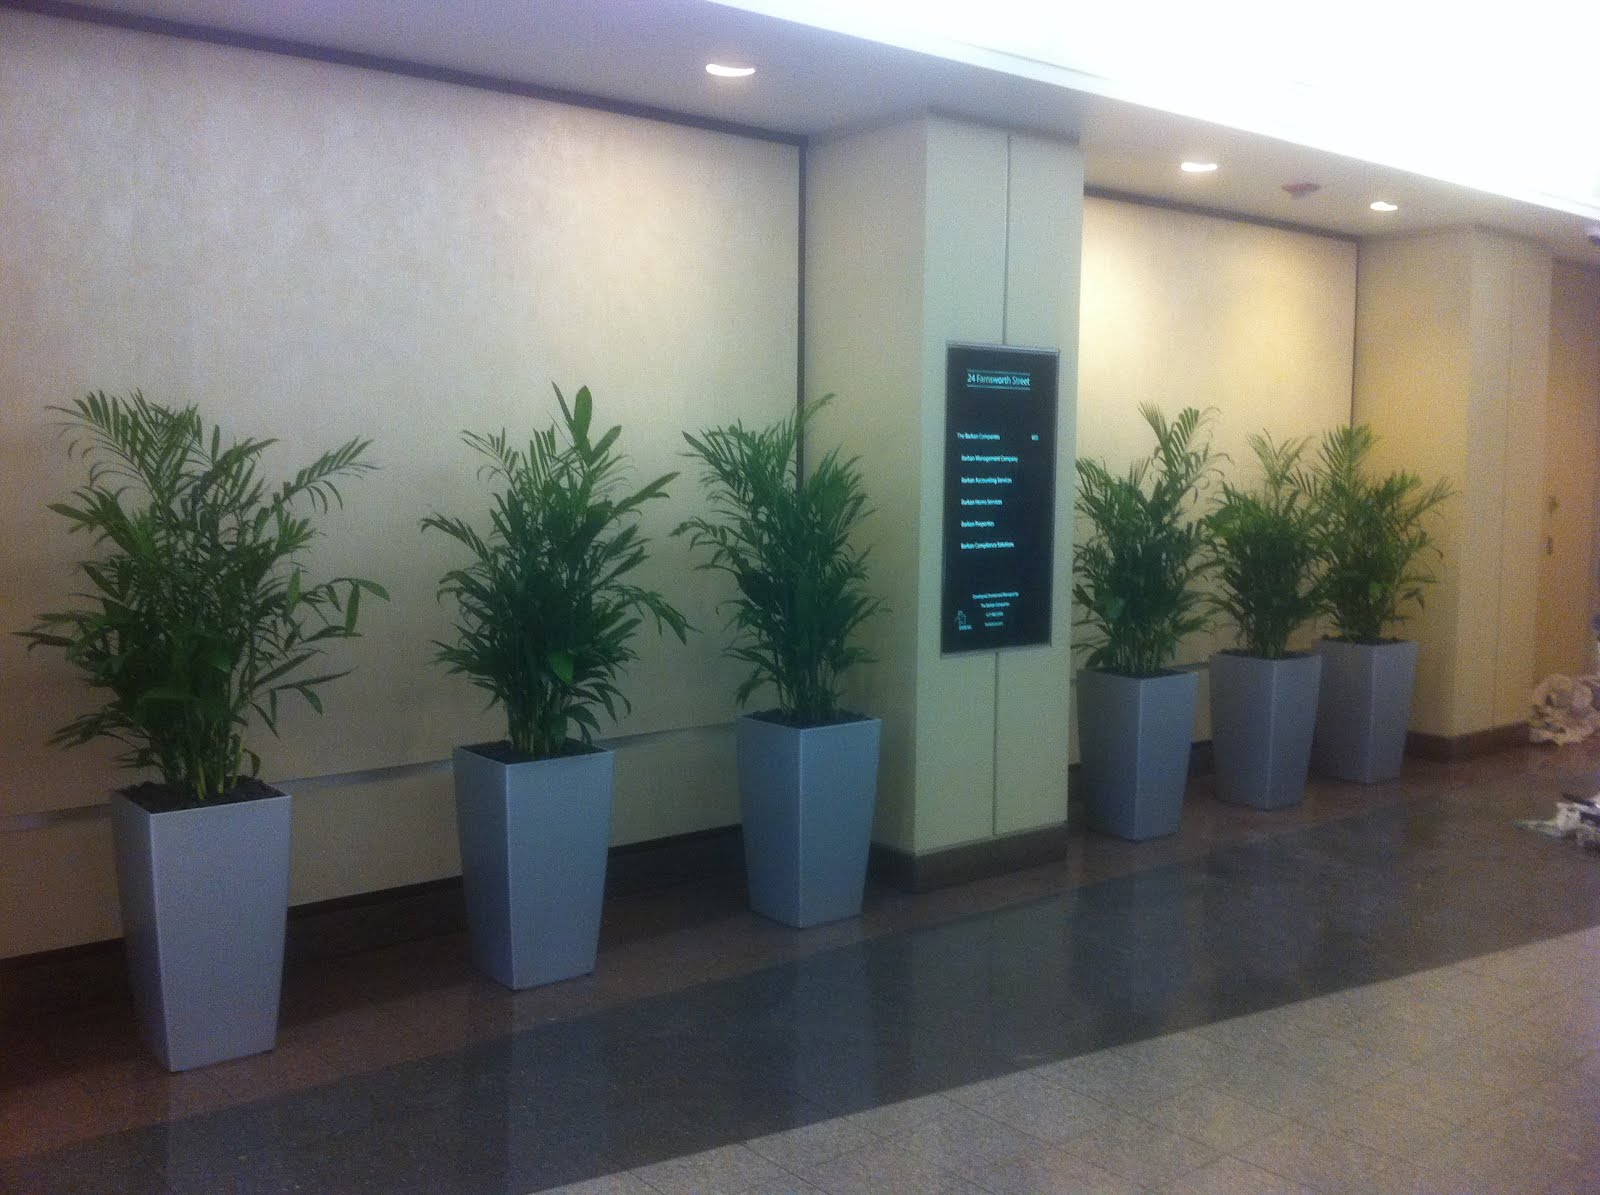 PDI Plants Blog: Repetitive use of green indoor plant design in ...